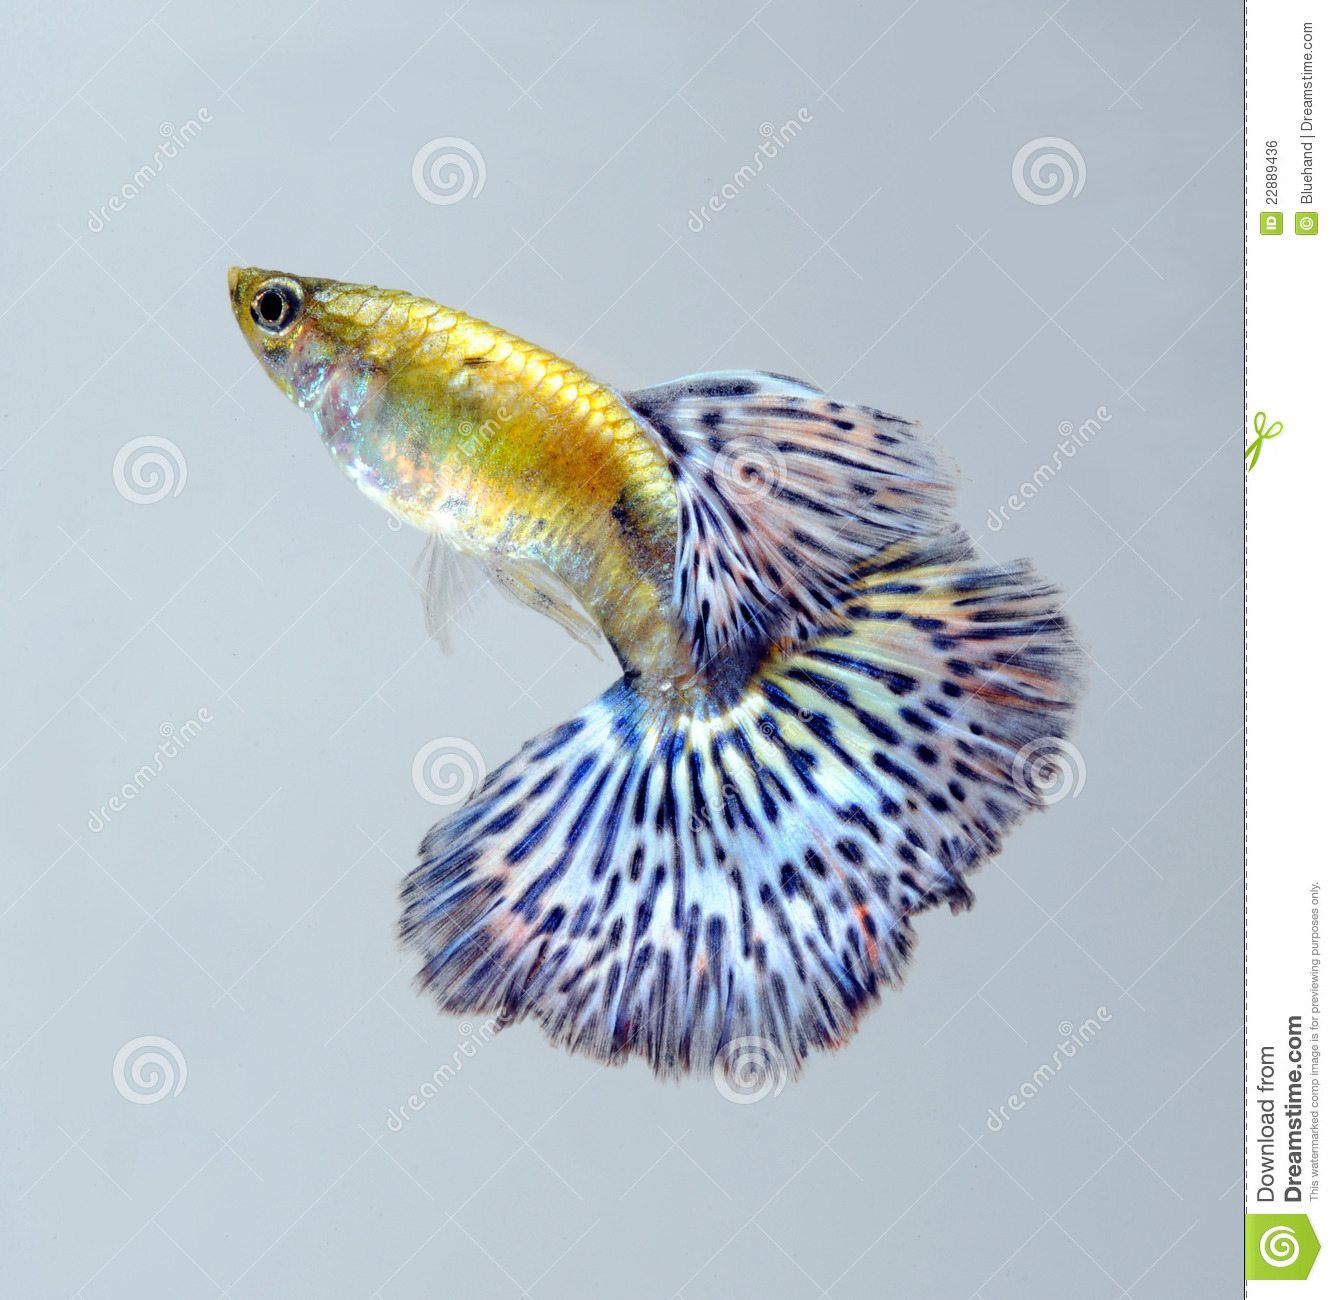 Guppy pet fish swimming royalty free stock image image for Dream of fish swimming